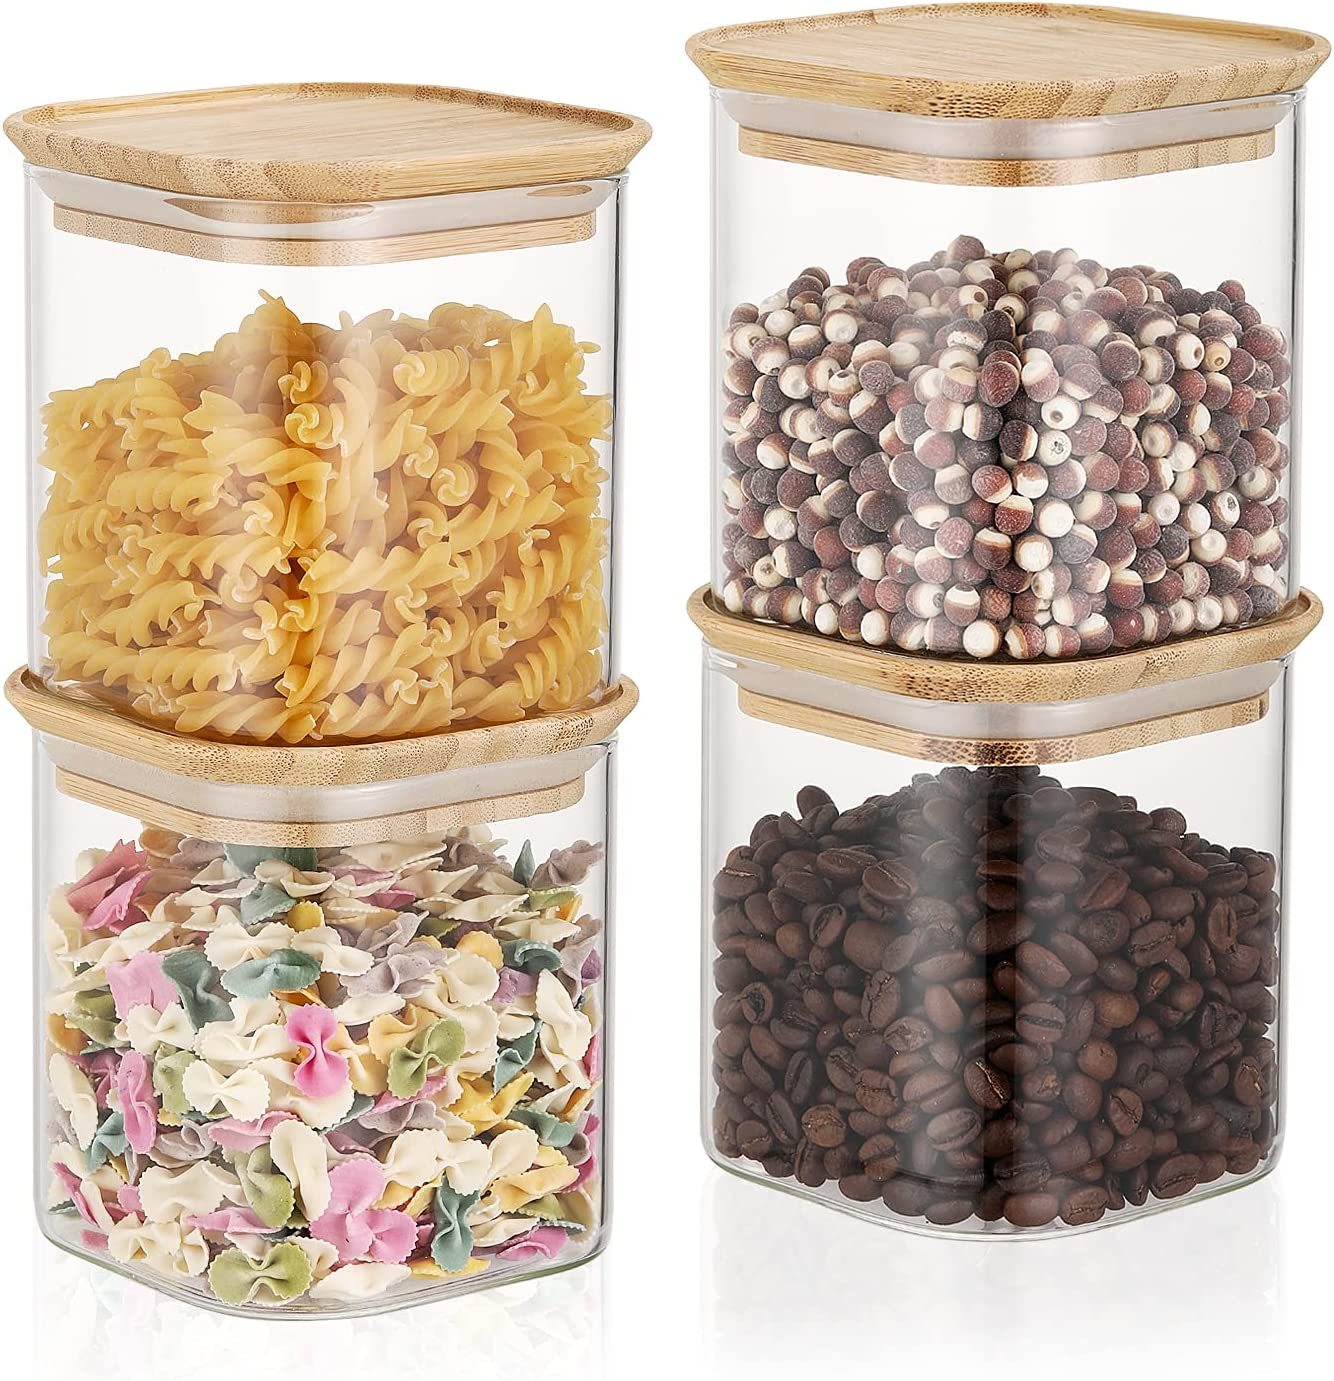 GlssHM 4 Pack Glass Jars wooden Containers Finally resale start New Orleans Mall with Bamboo Airtight